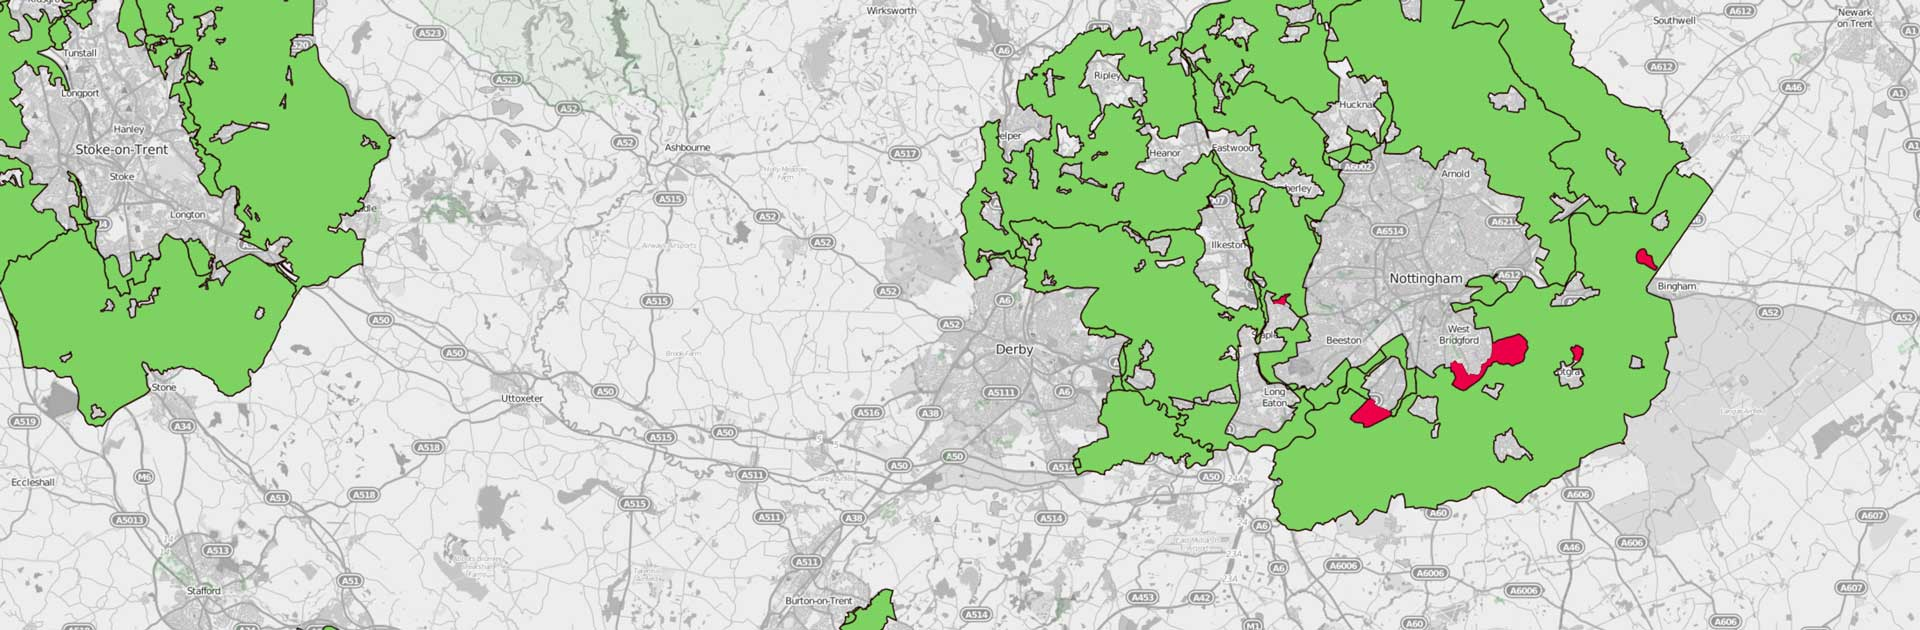 Green Belt Interactive Map